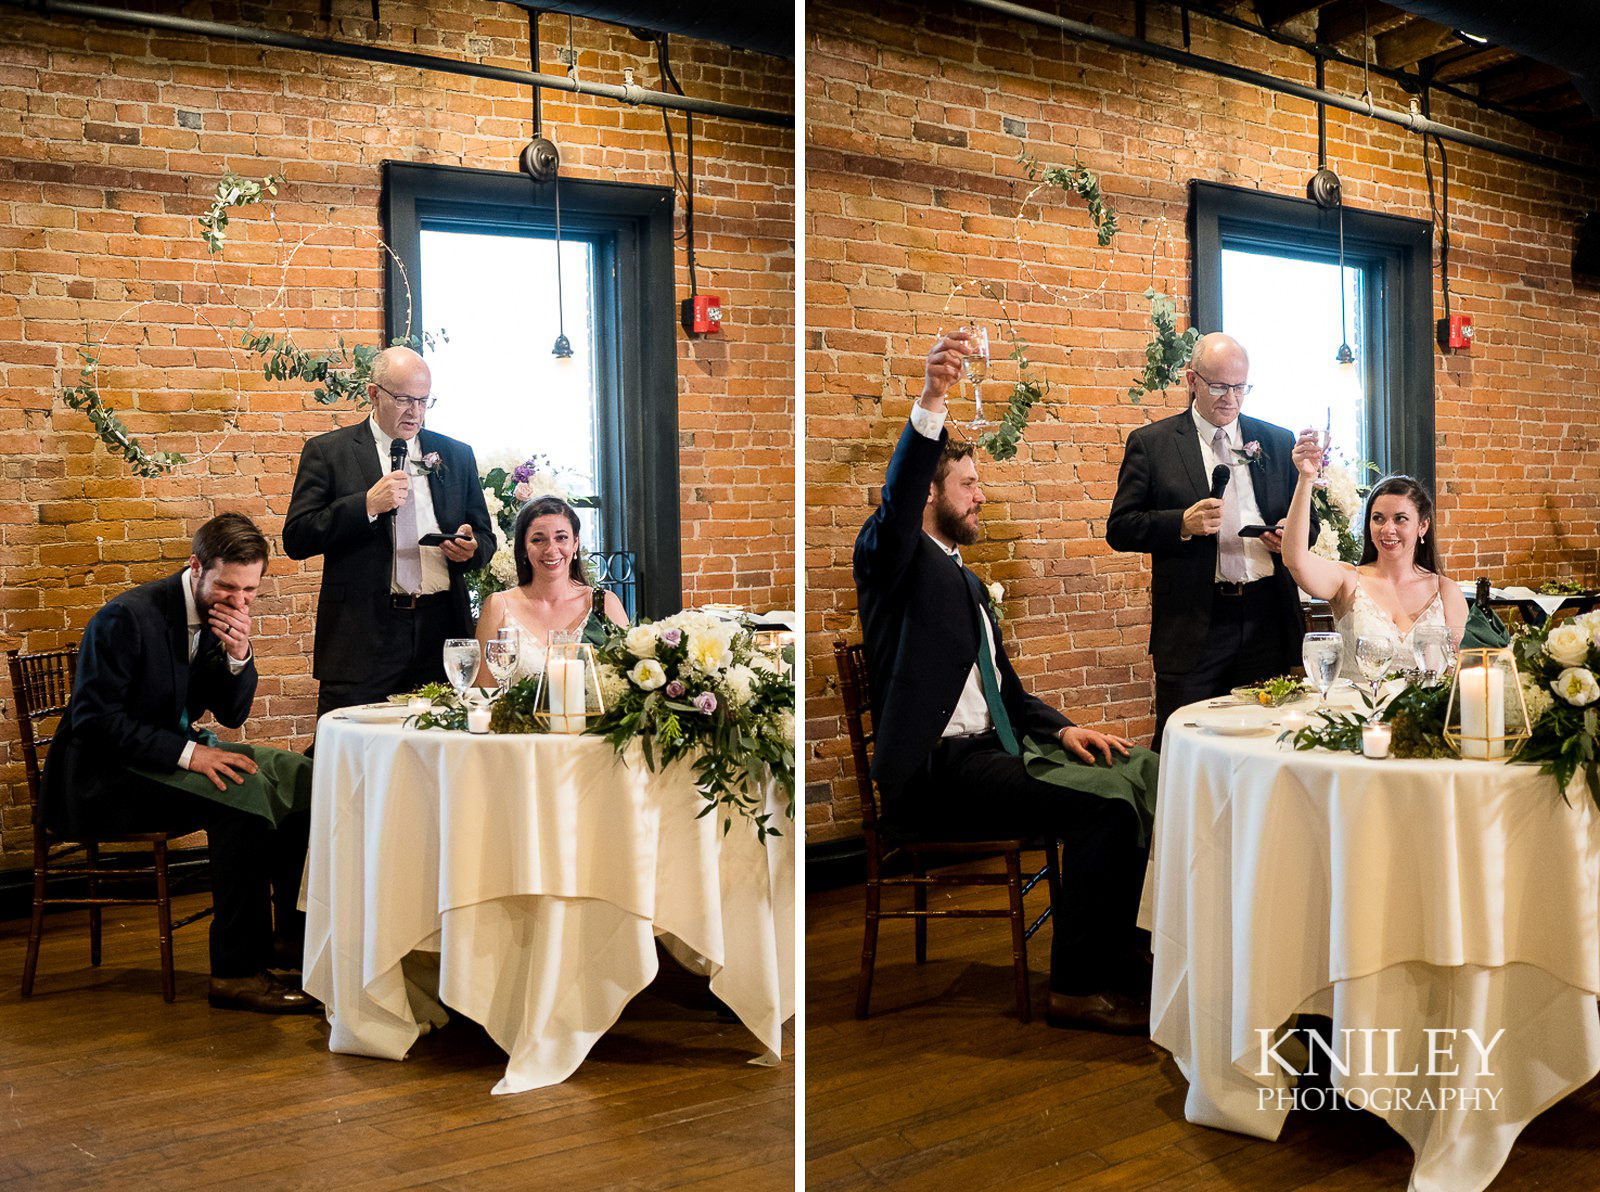 43-Pearl-St-Grill-Wedding-Reception-Buffalo-NY-Kniley-Photography.jpg